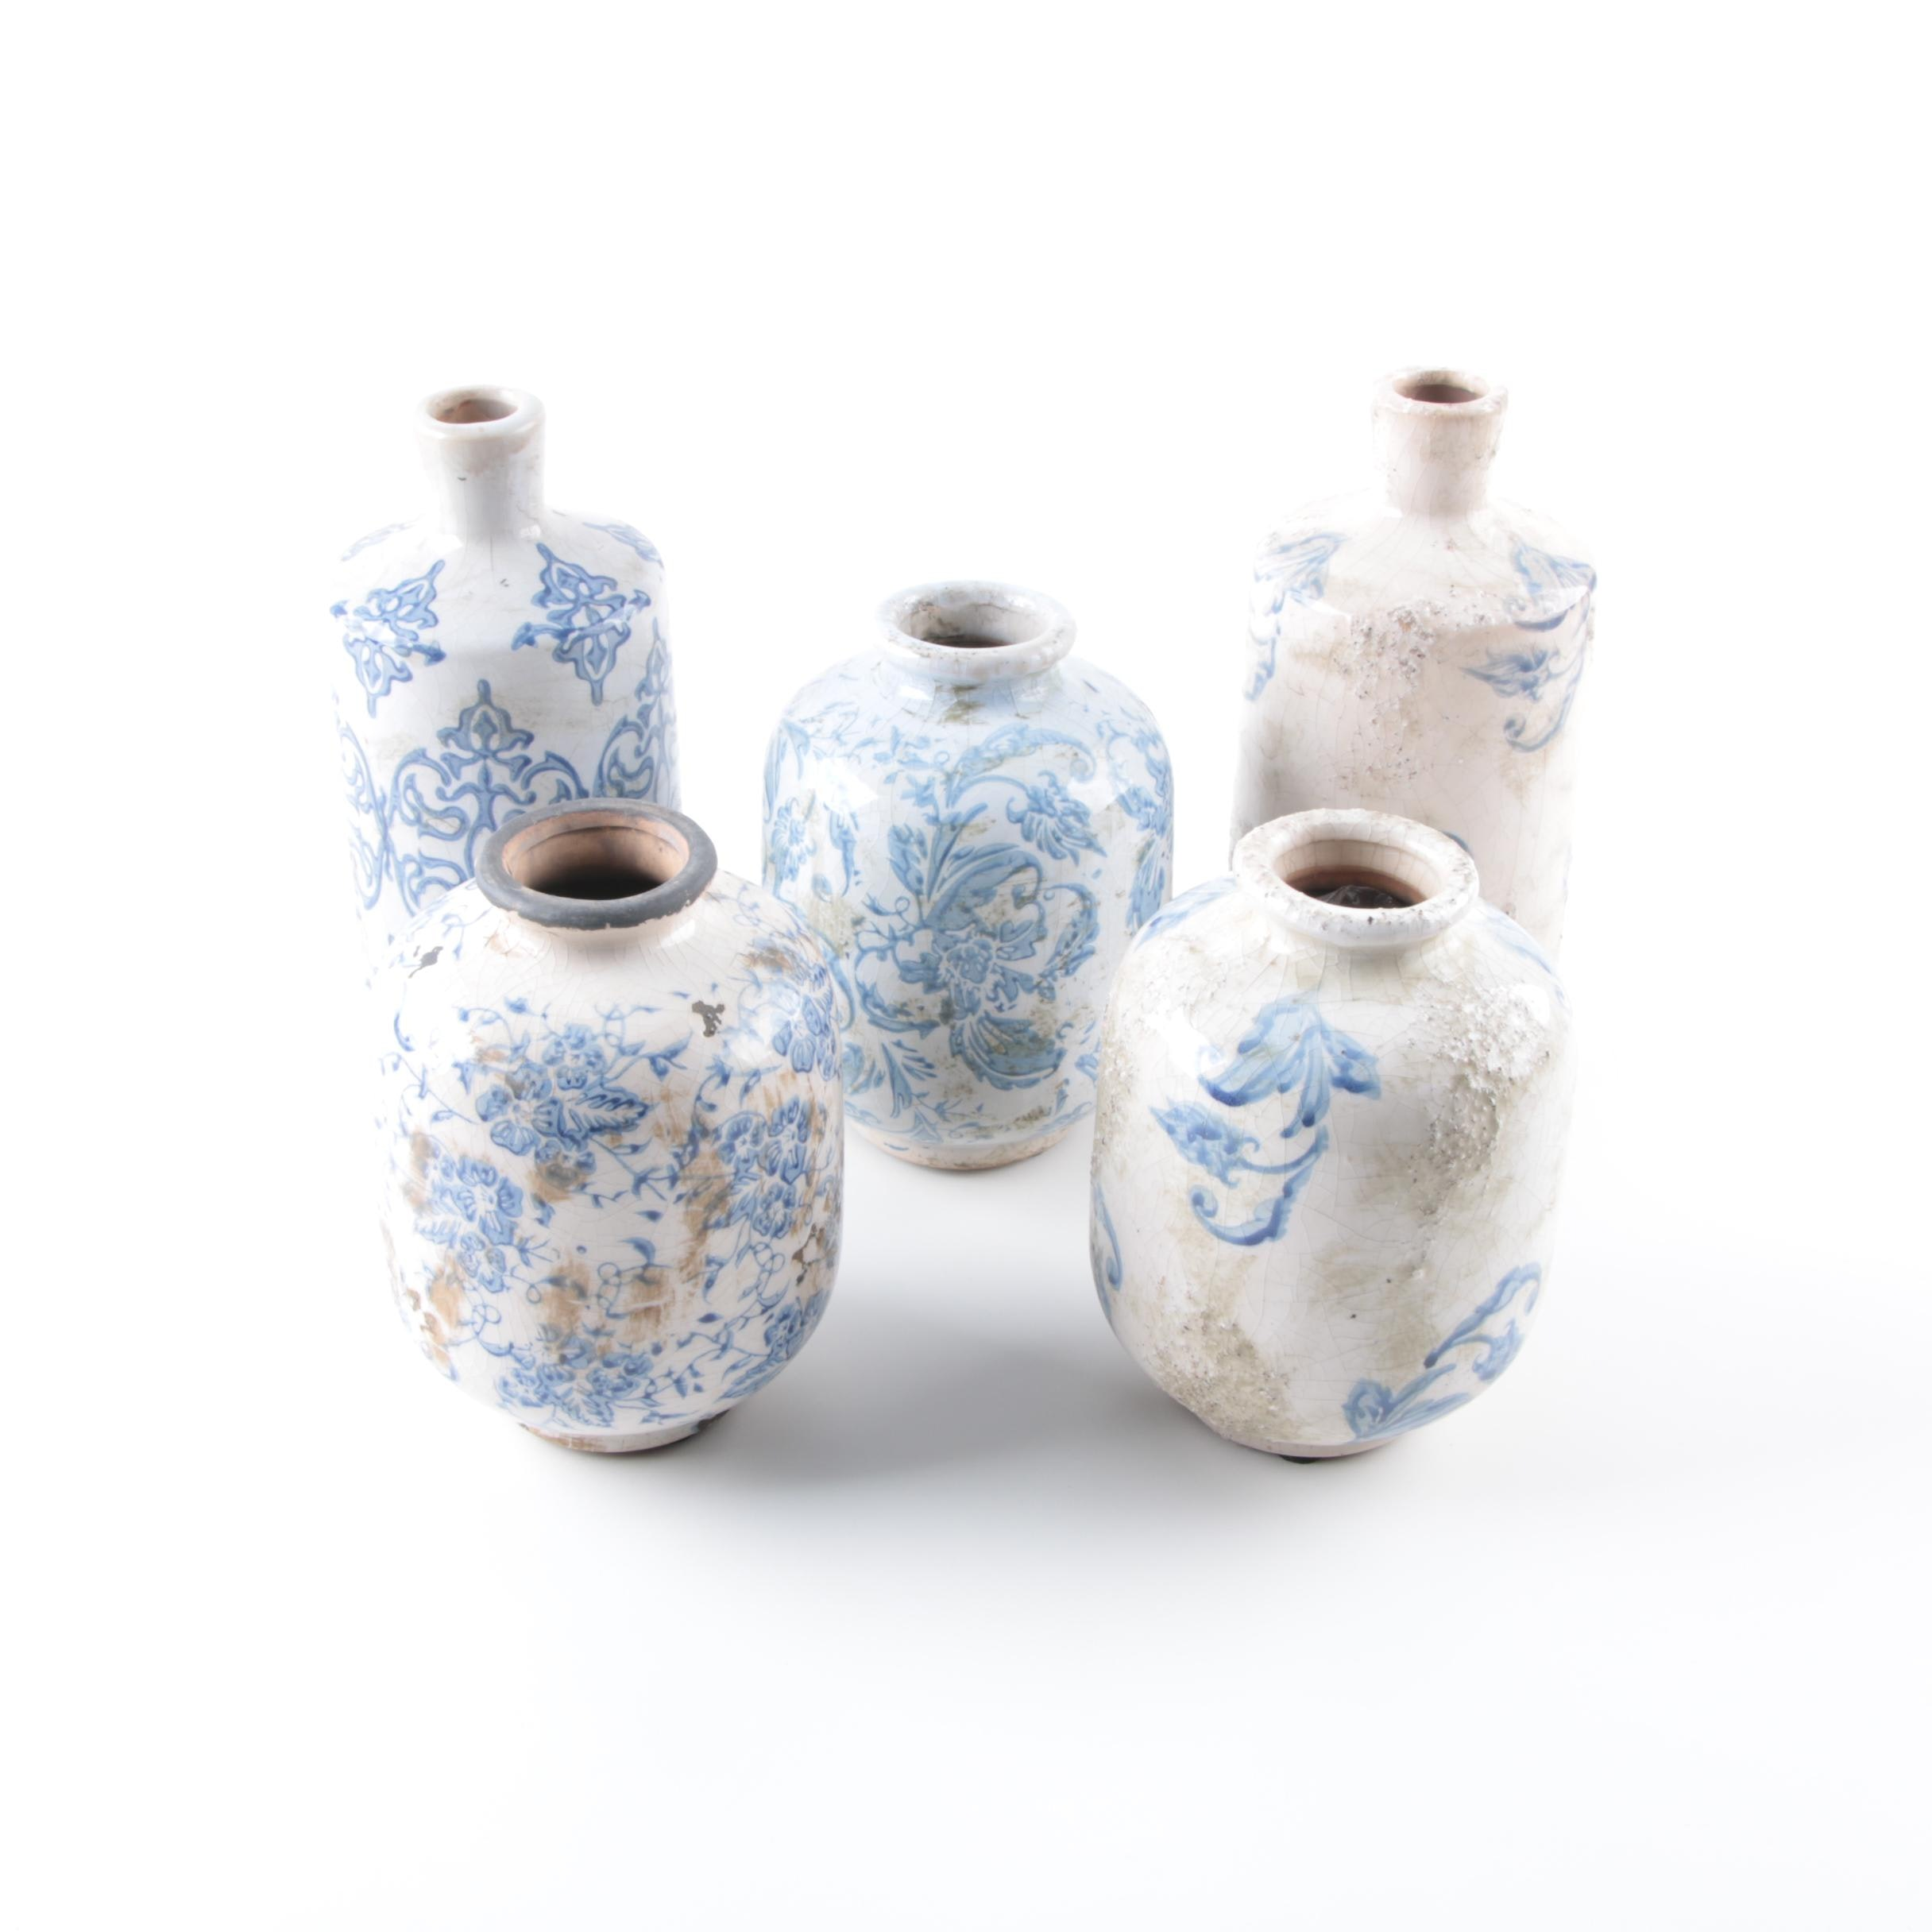 Blue and White Ceramic Jugs